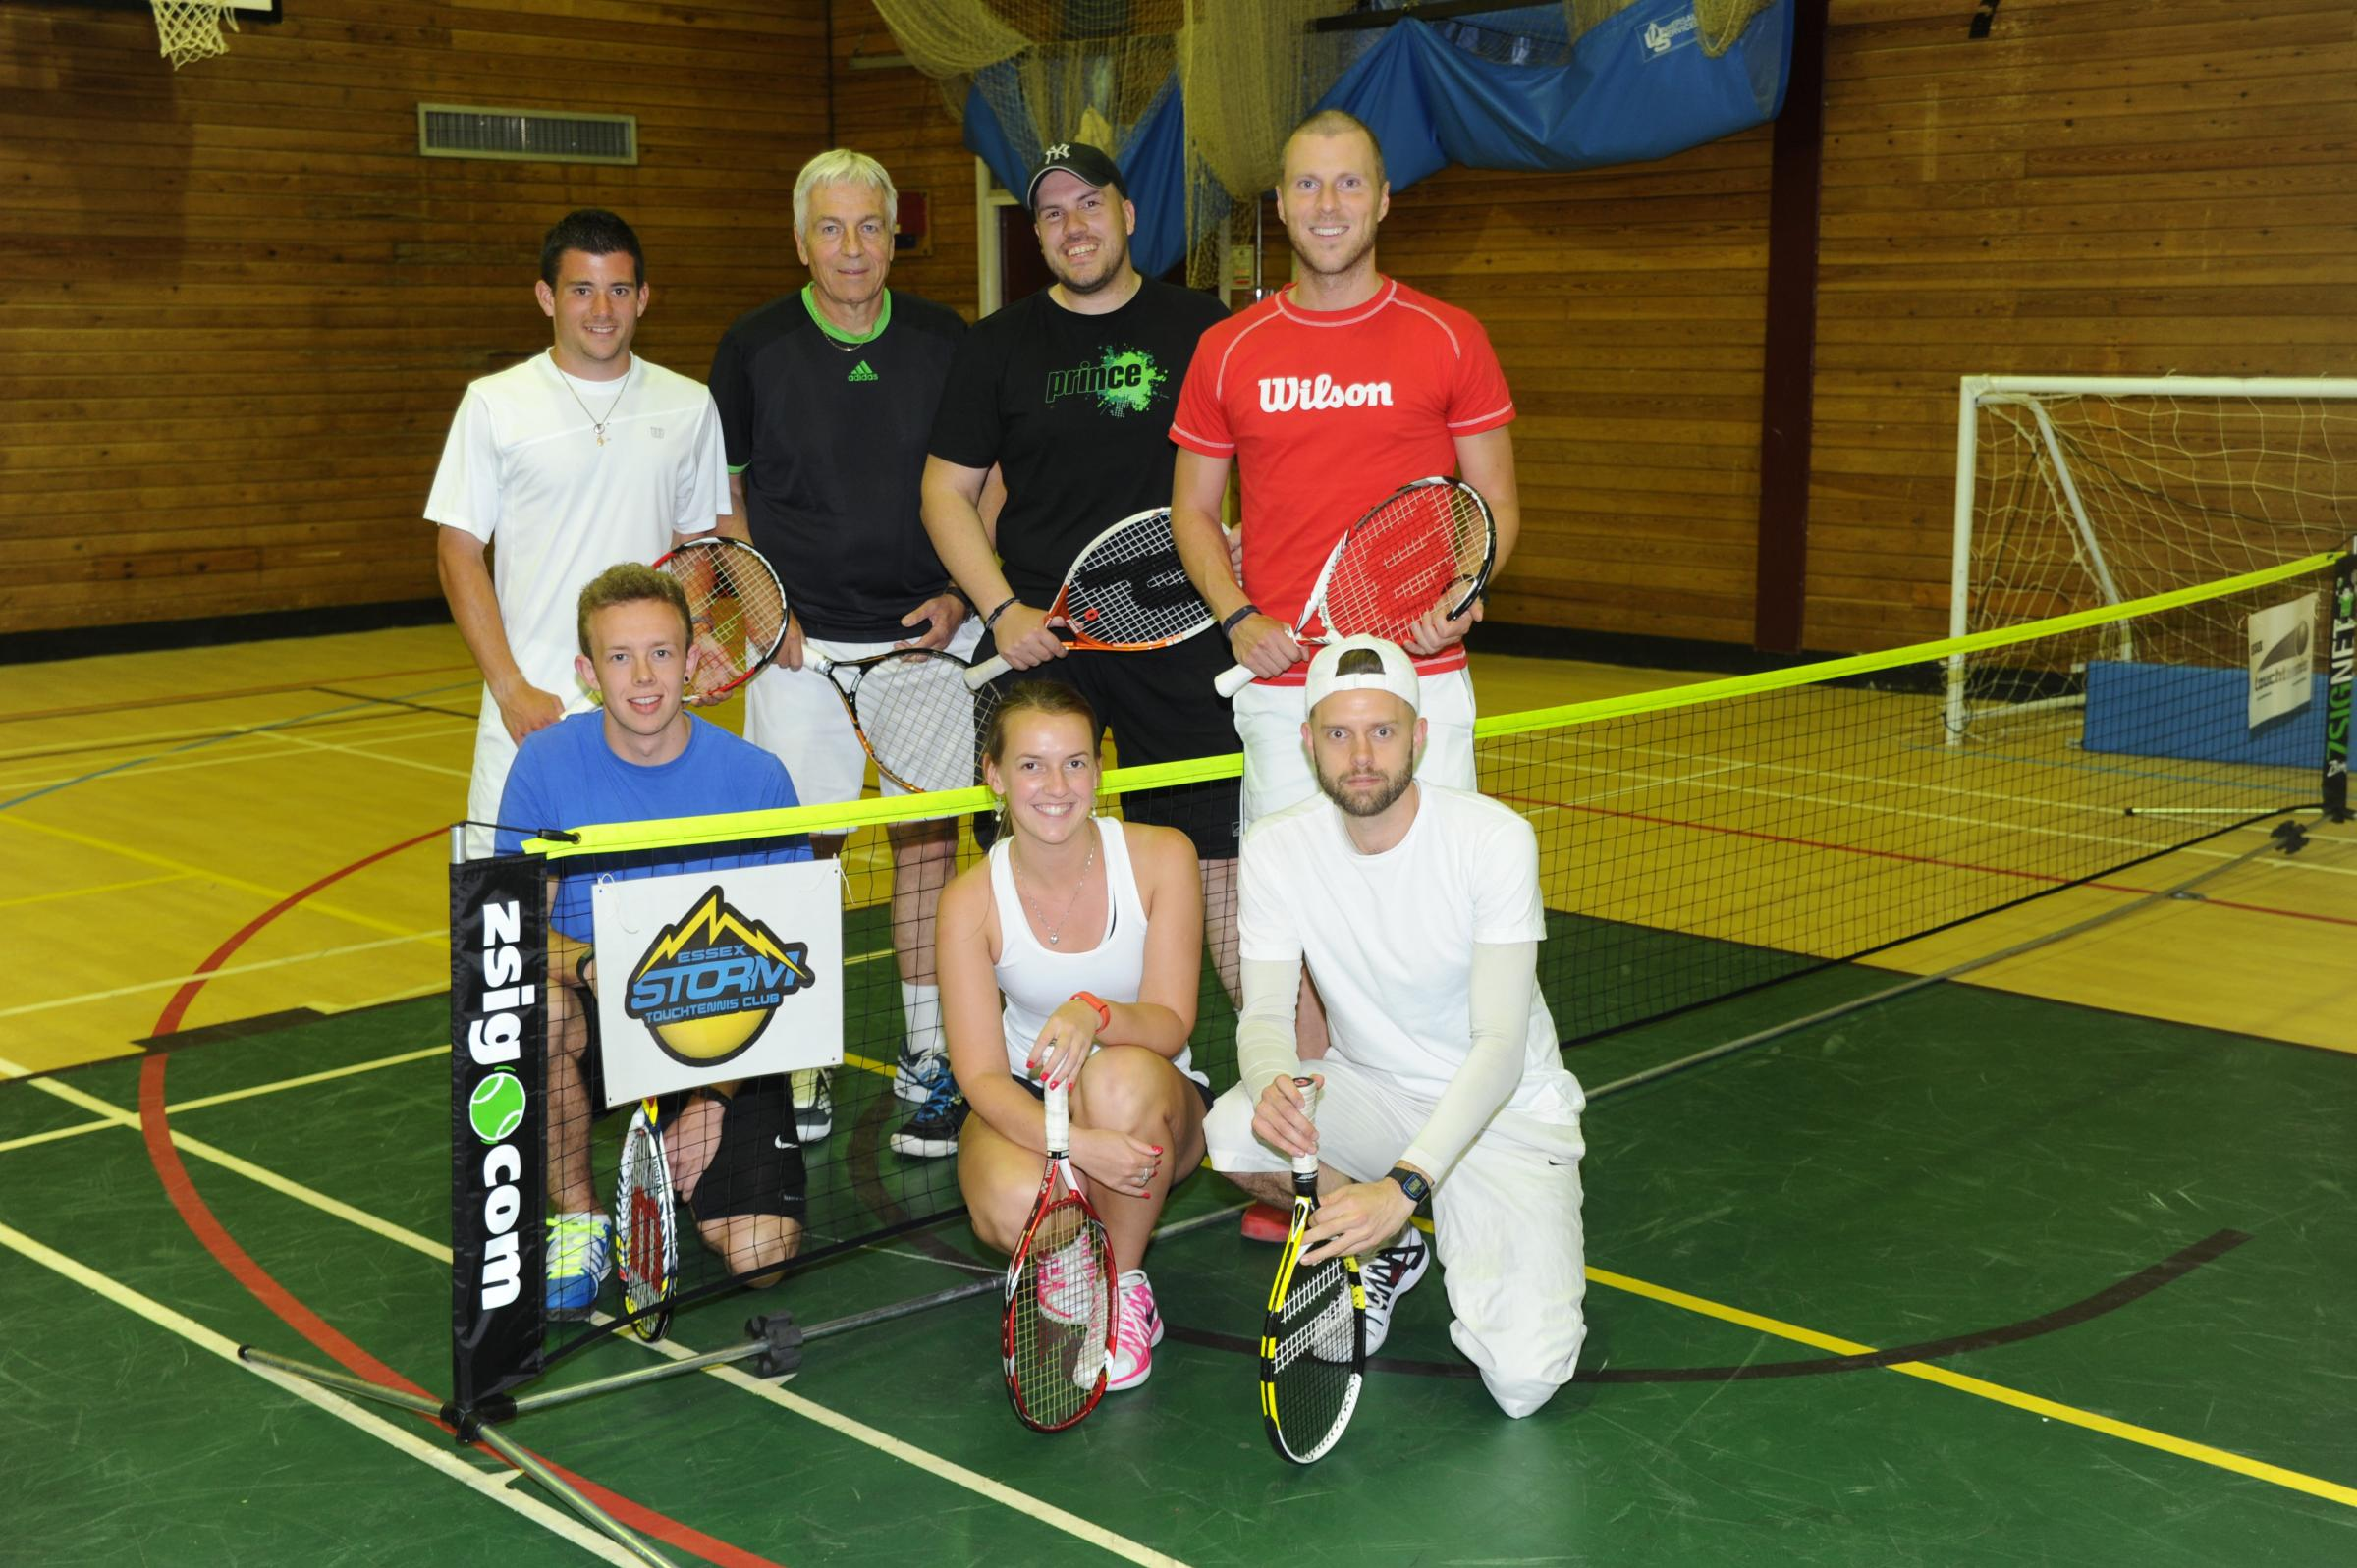 Great game — (l-r) Matt Pearce, Lewis Baker, Simon Mayes, Christine Horne, Dave Capper, Nick Bohringer and Luke Mayes play touchtennis at Seevic College